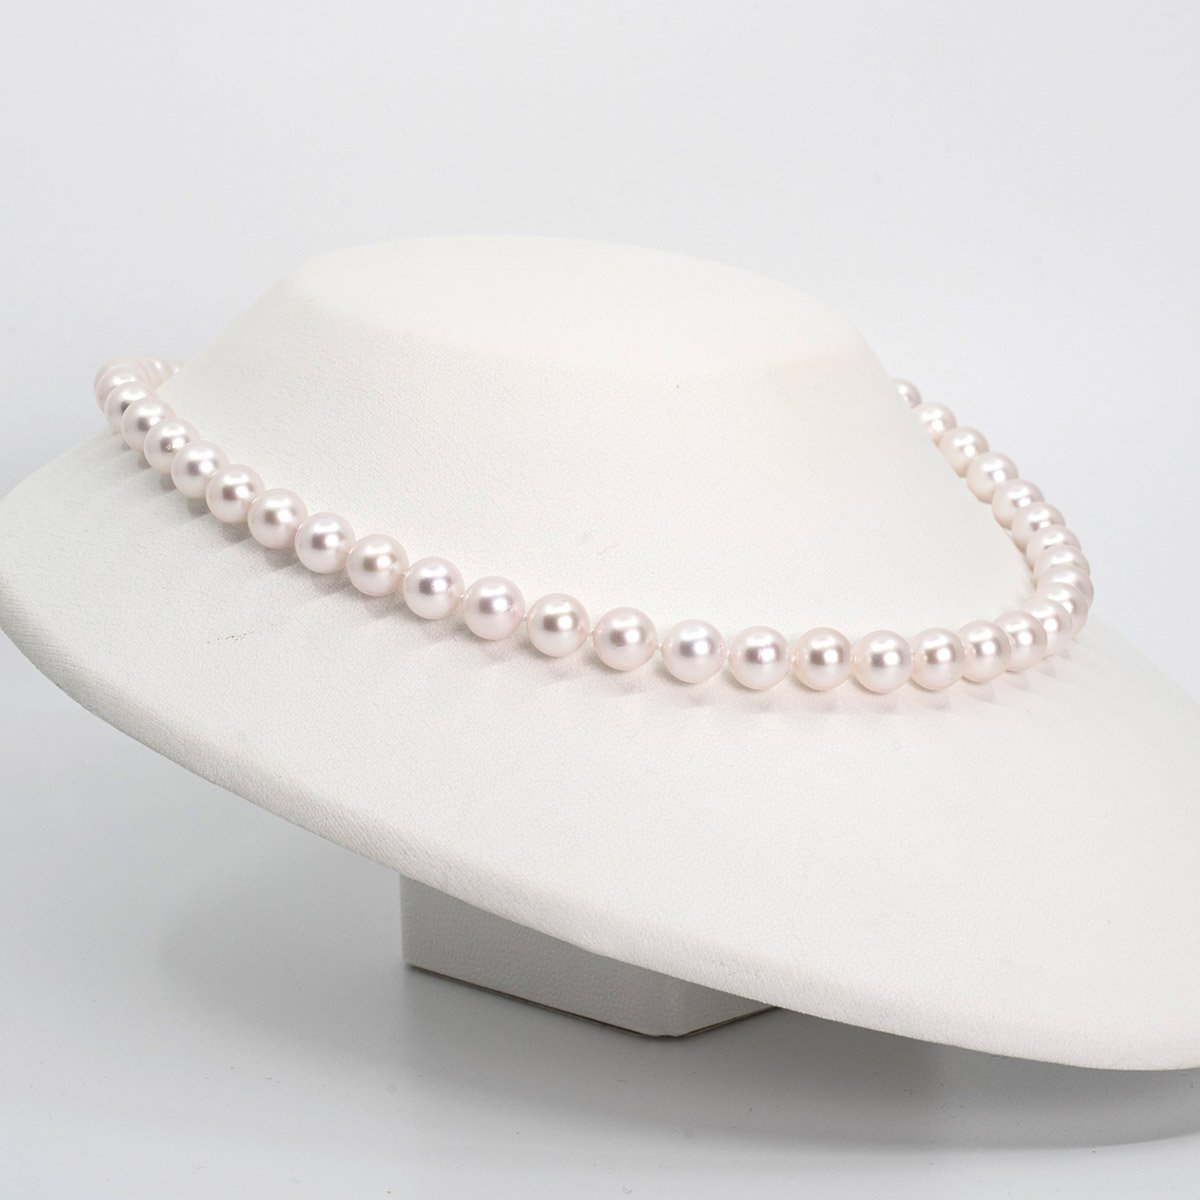 Stunning Japanese Akoya Pearl Necklace 7x7.5mm AA+ luster